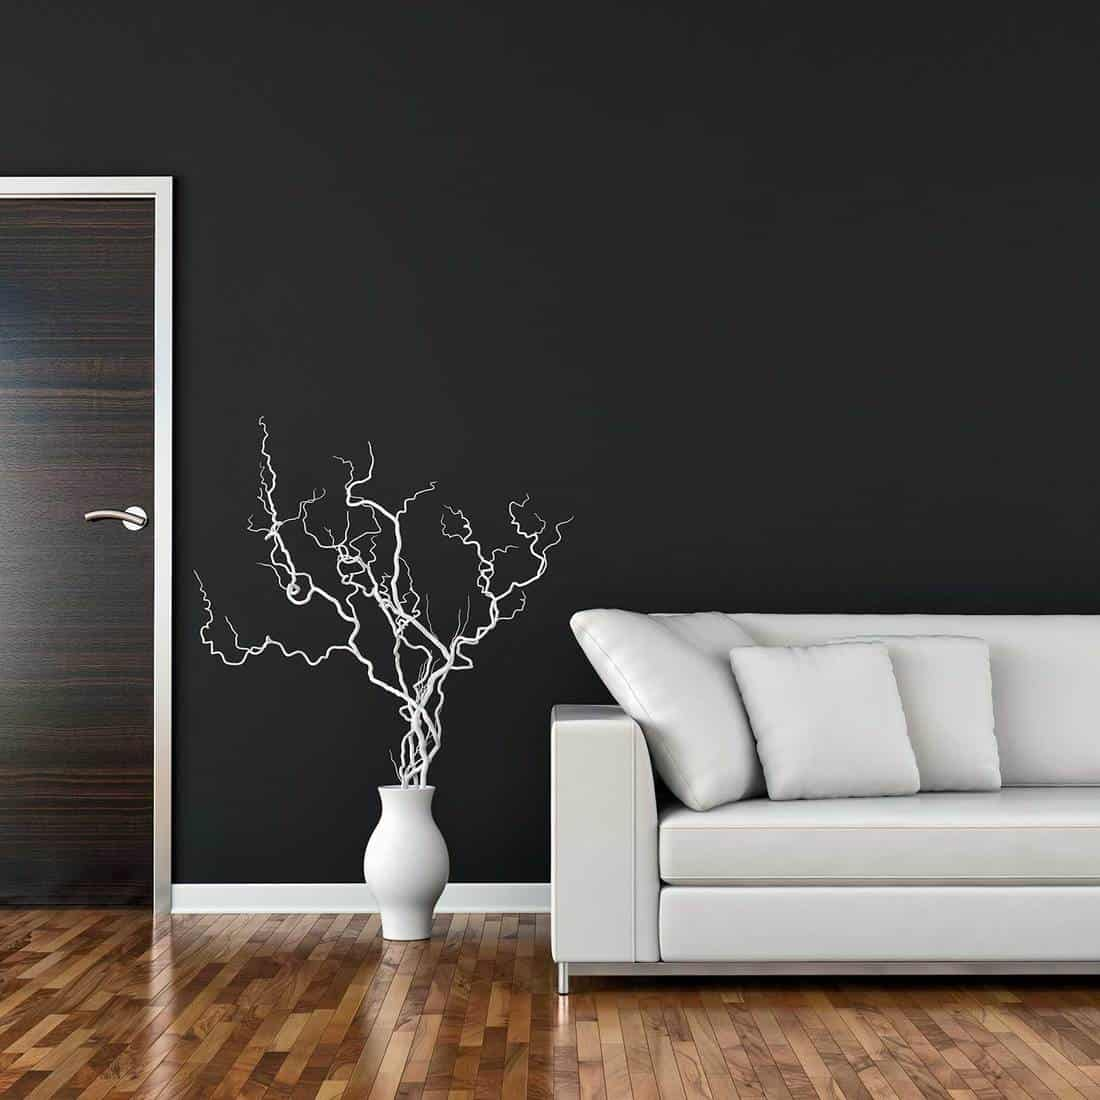 Living room with sofa and decoration on parquet floor in front of black plaster wall with a door